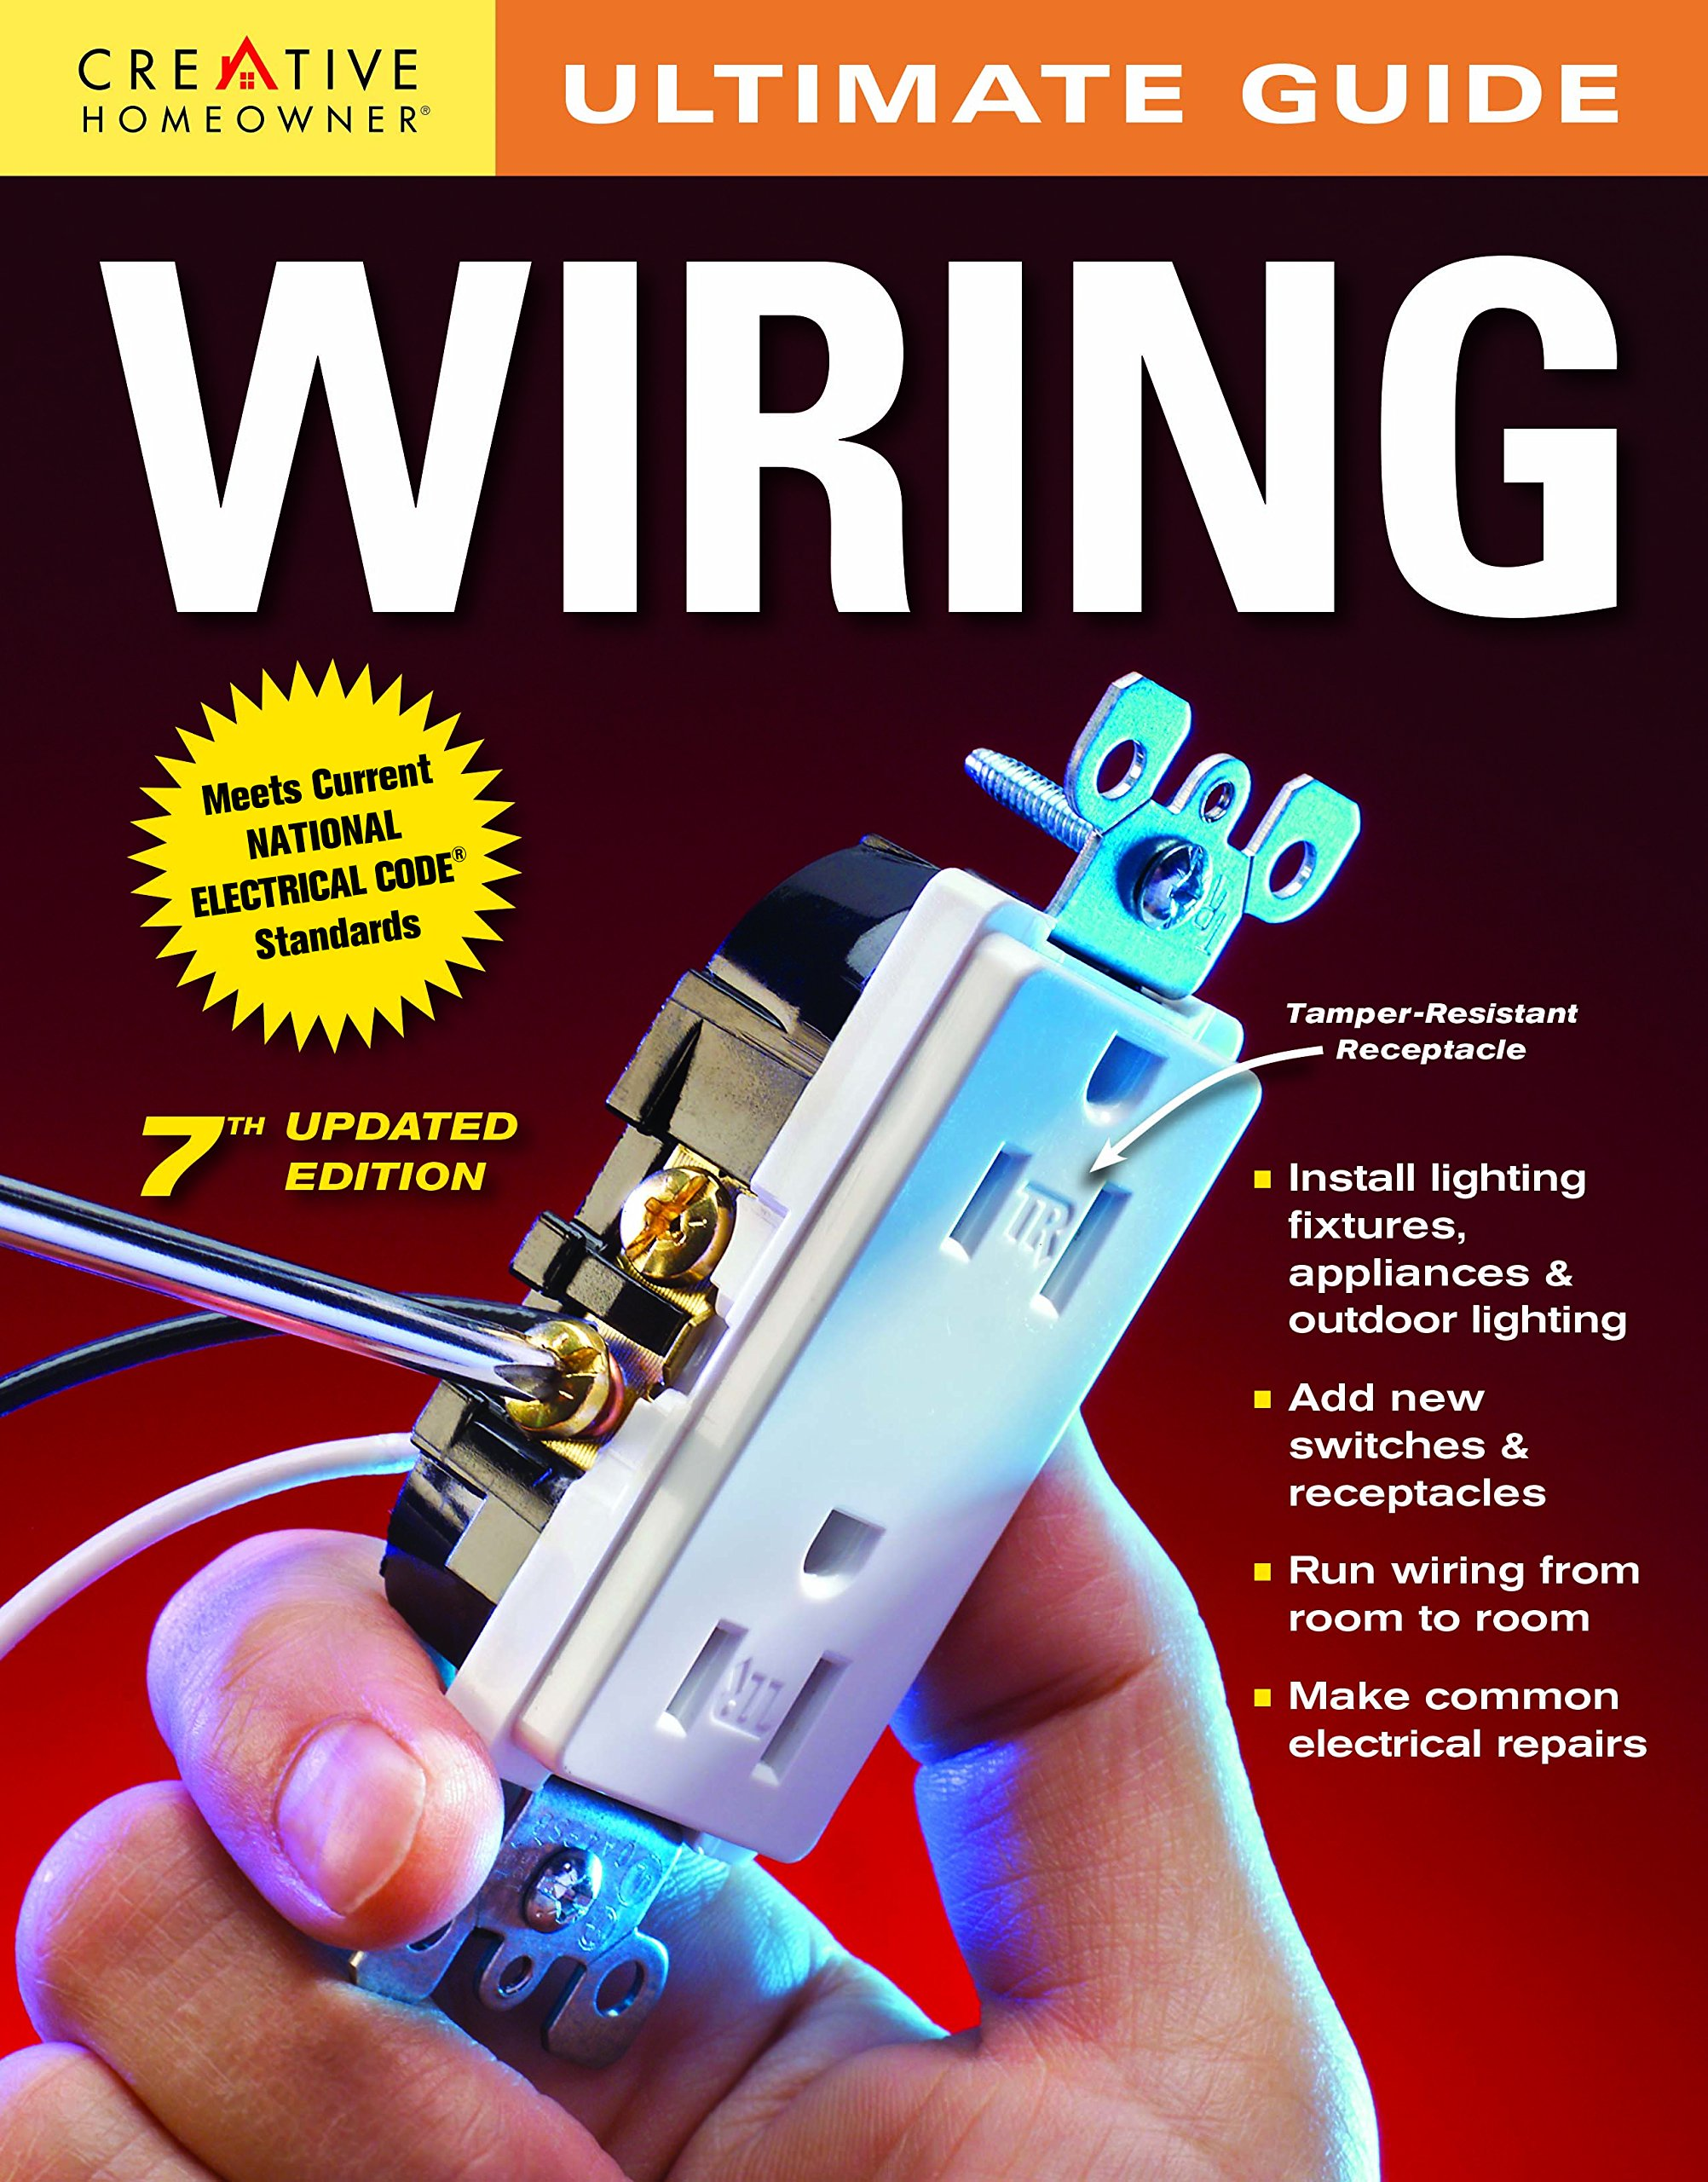 Ultimate Guide Wiring 7th Edition Home Improvement Editors Of New Construction Electric Harry Electrician Creative Homeowner How To 0078585114870 Books